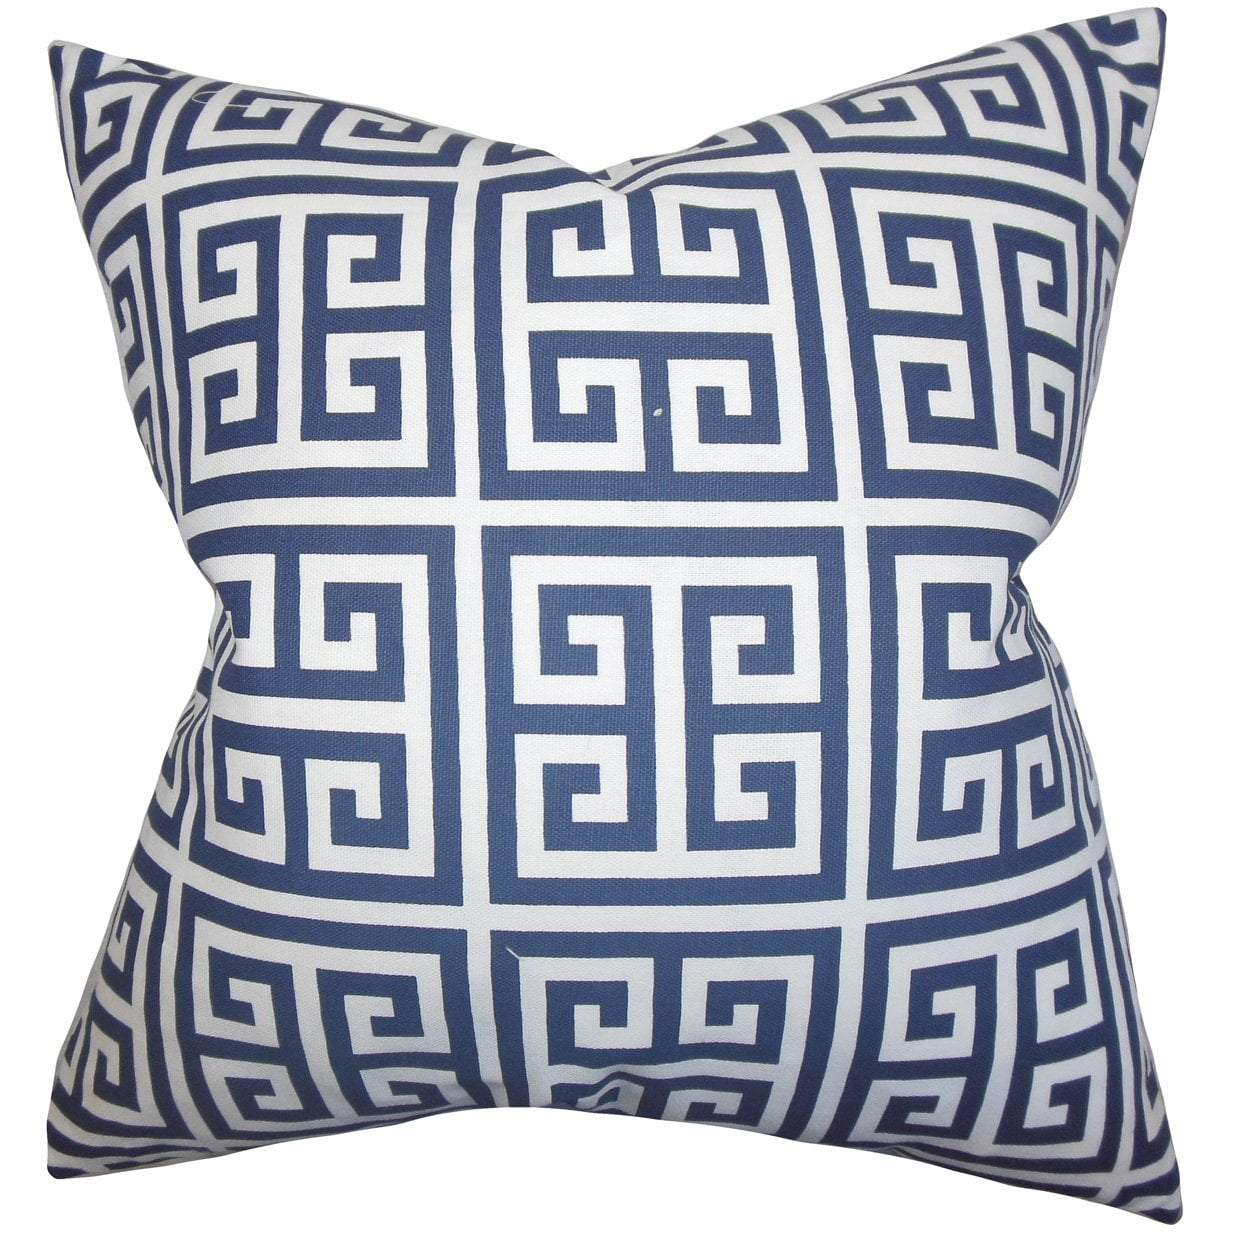 Channel Throw Pillow Cover